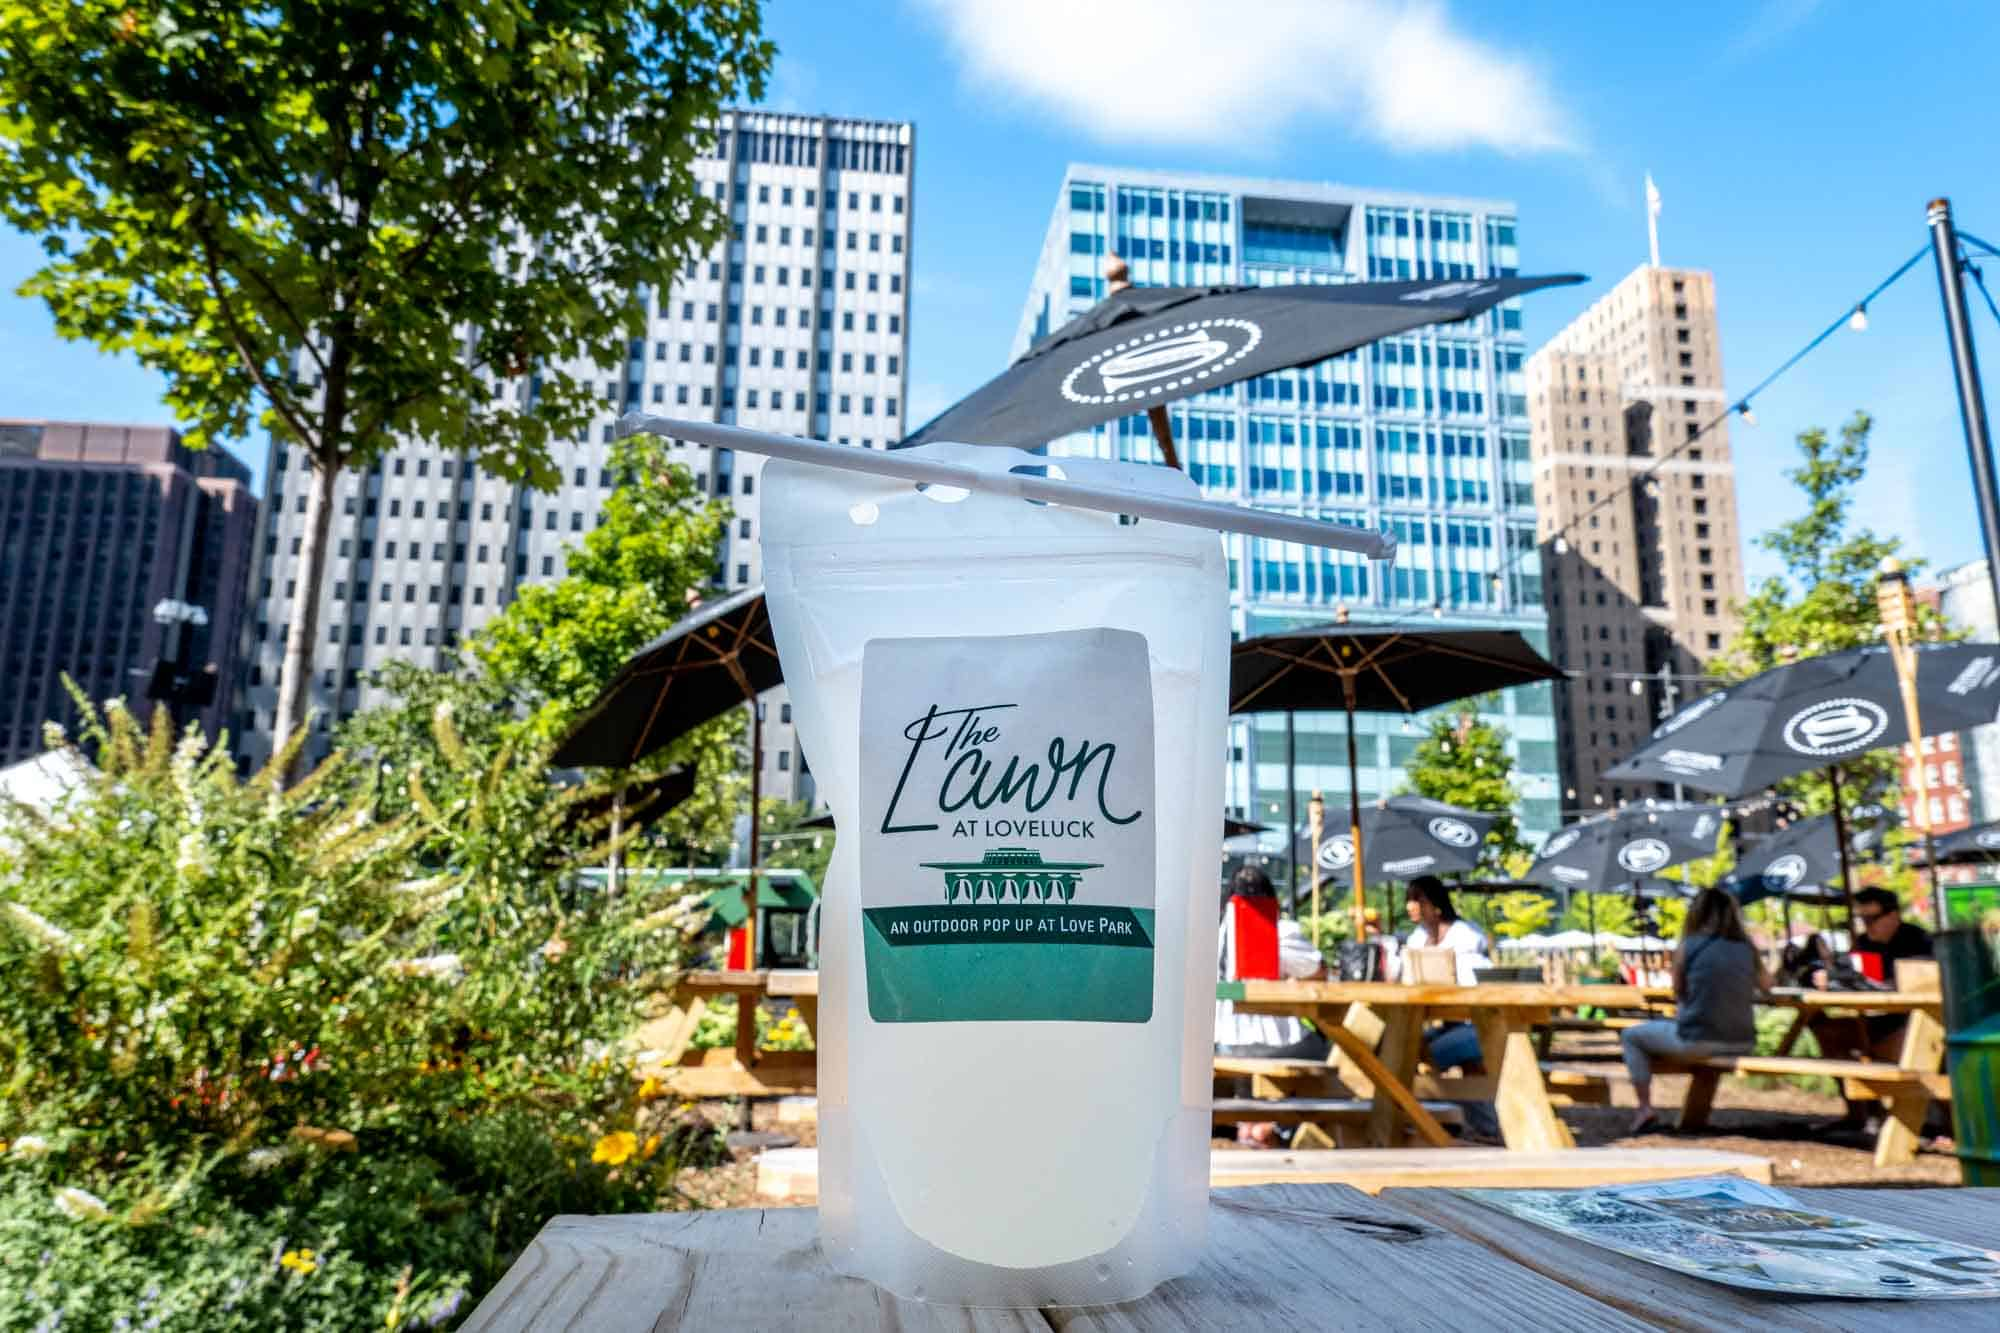 """Cocktail pouch on picnic table reading """"The Lawn at LoveLuck, an outdoor pop up at Love Park"""""""